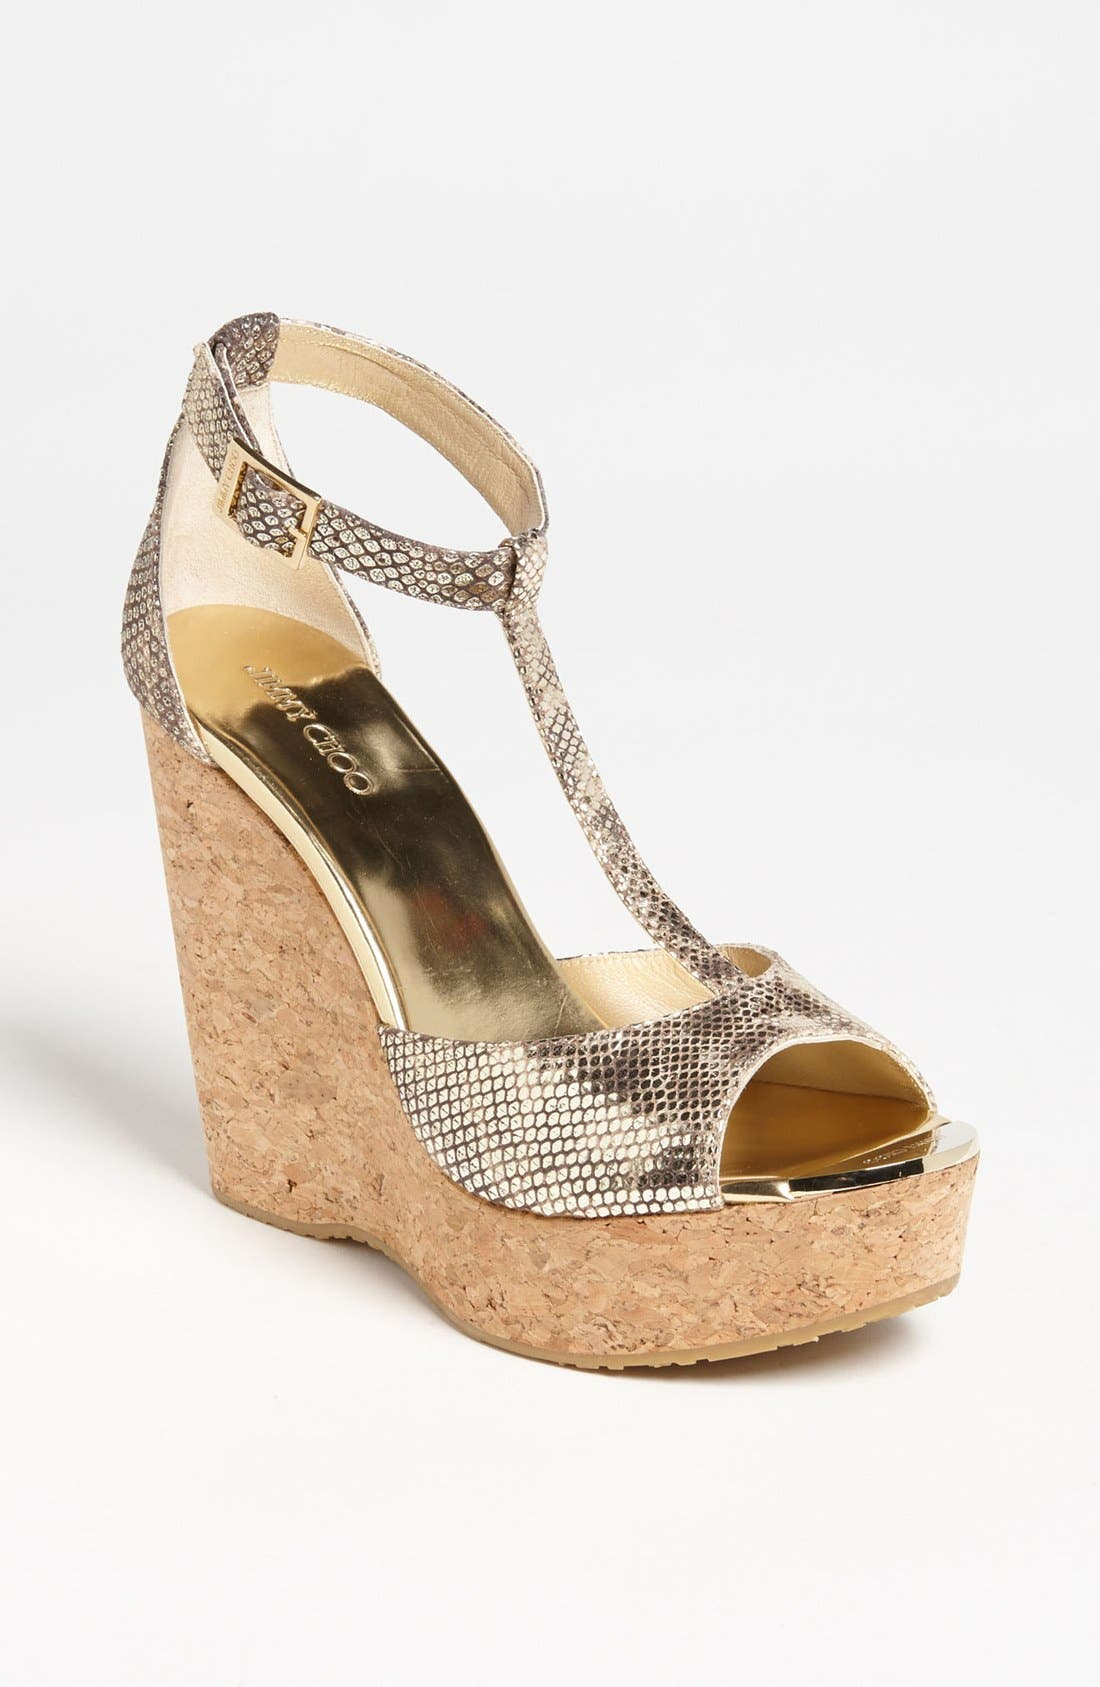 Alternate Image 1 Selected - Jimmy Choo 'Pela' Cork Wedge Sandal